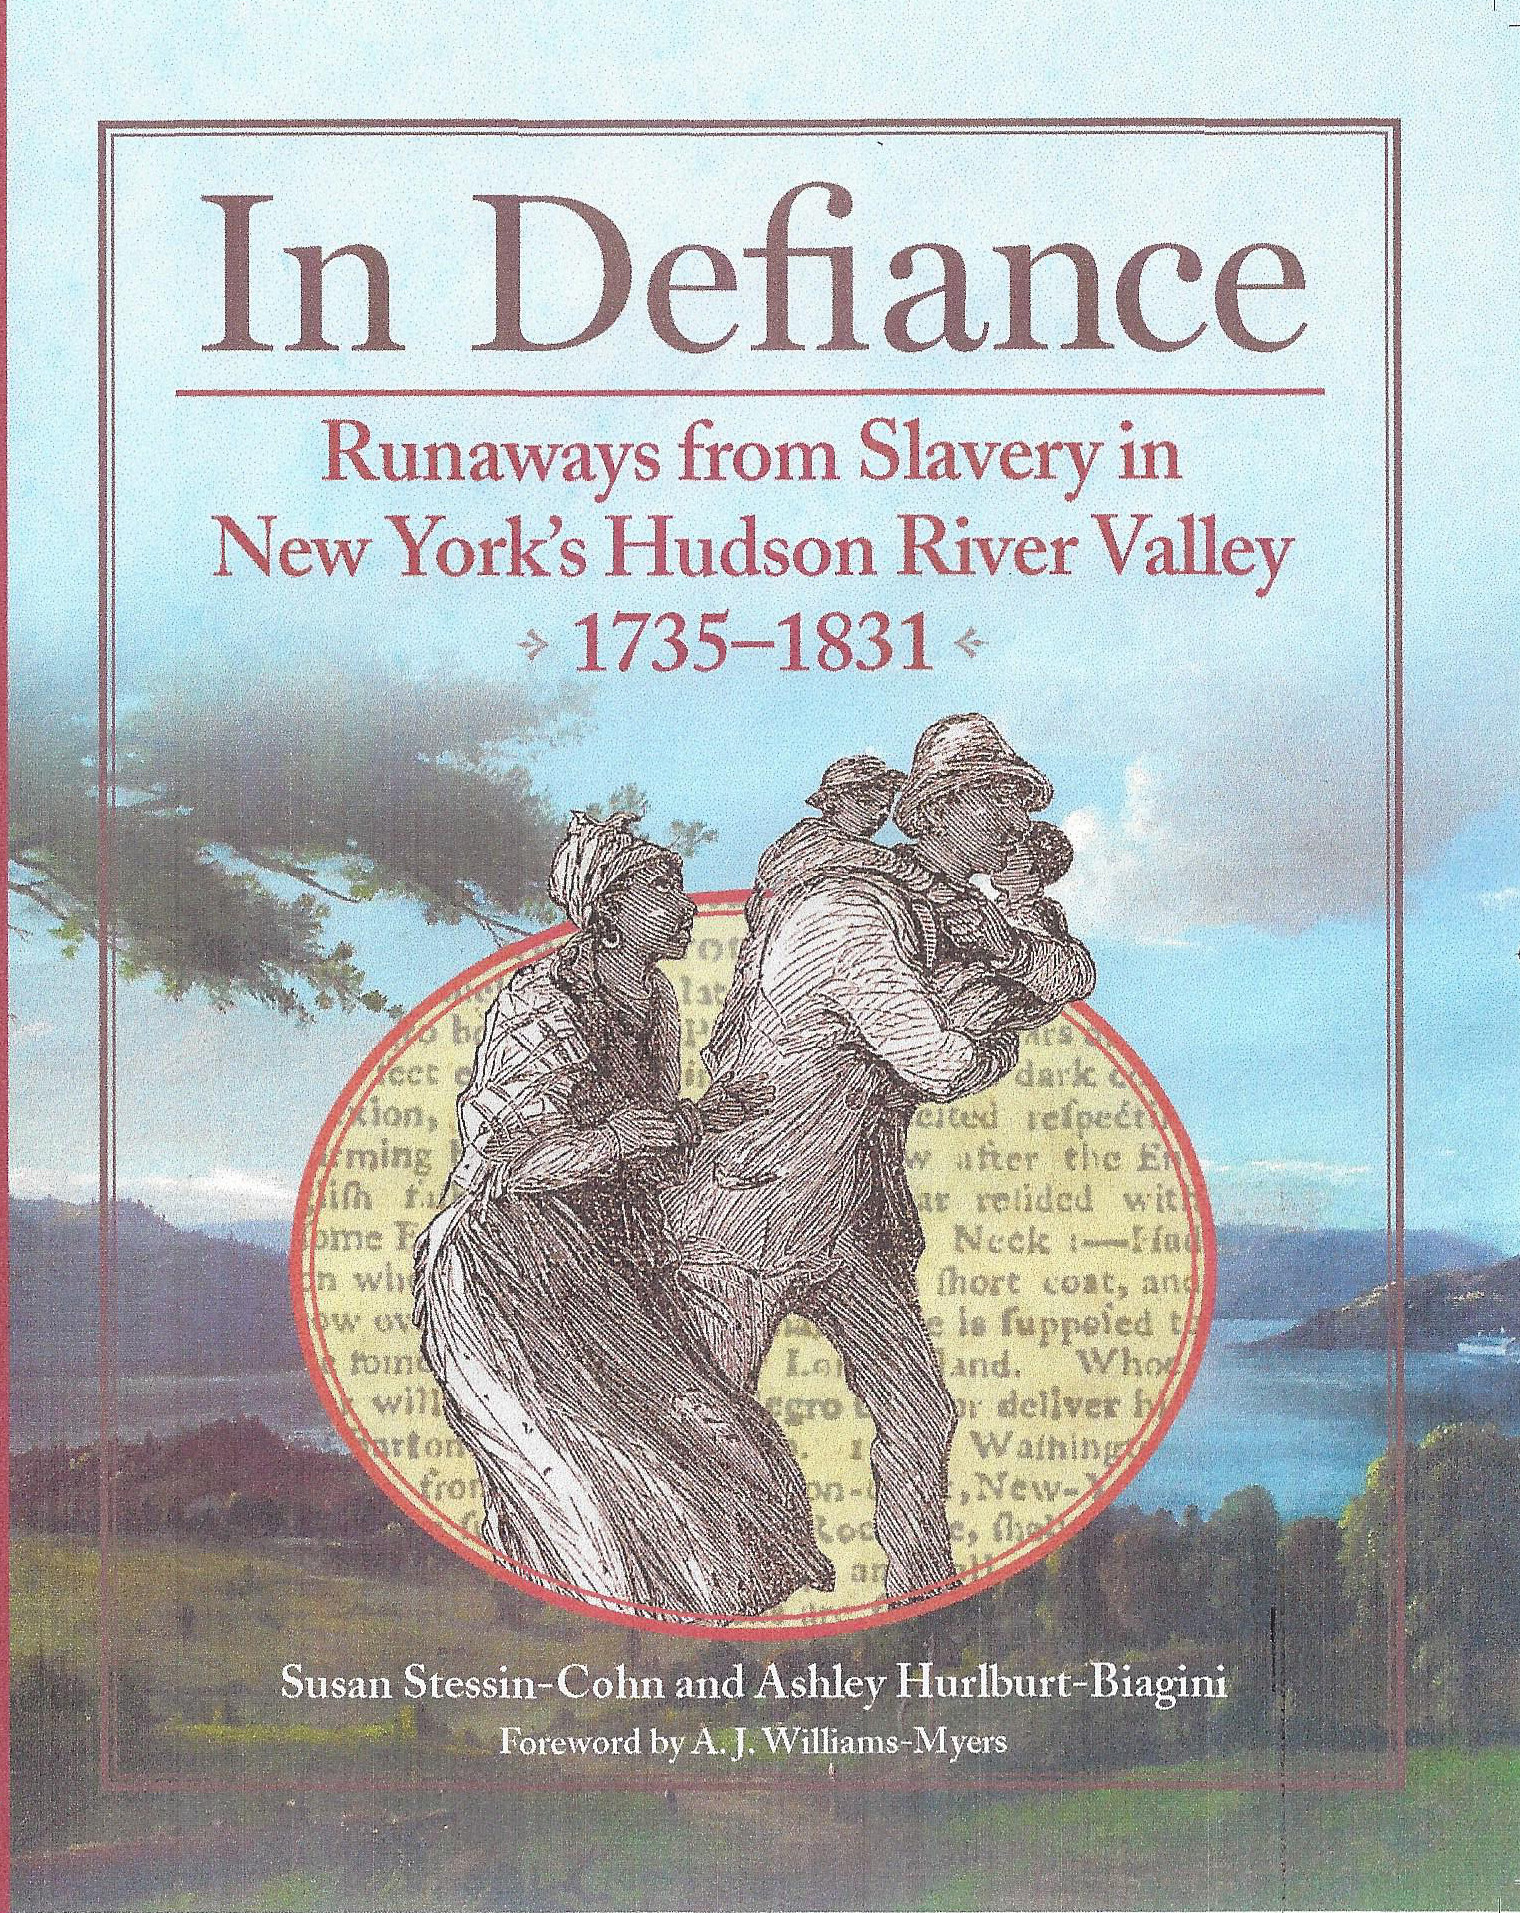 In Defiance: Runaways from Slavery